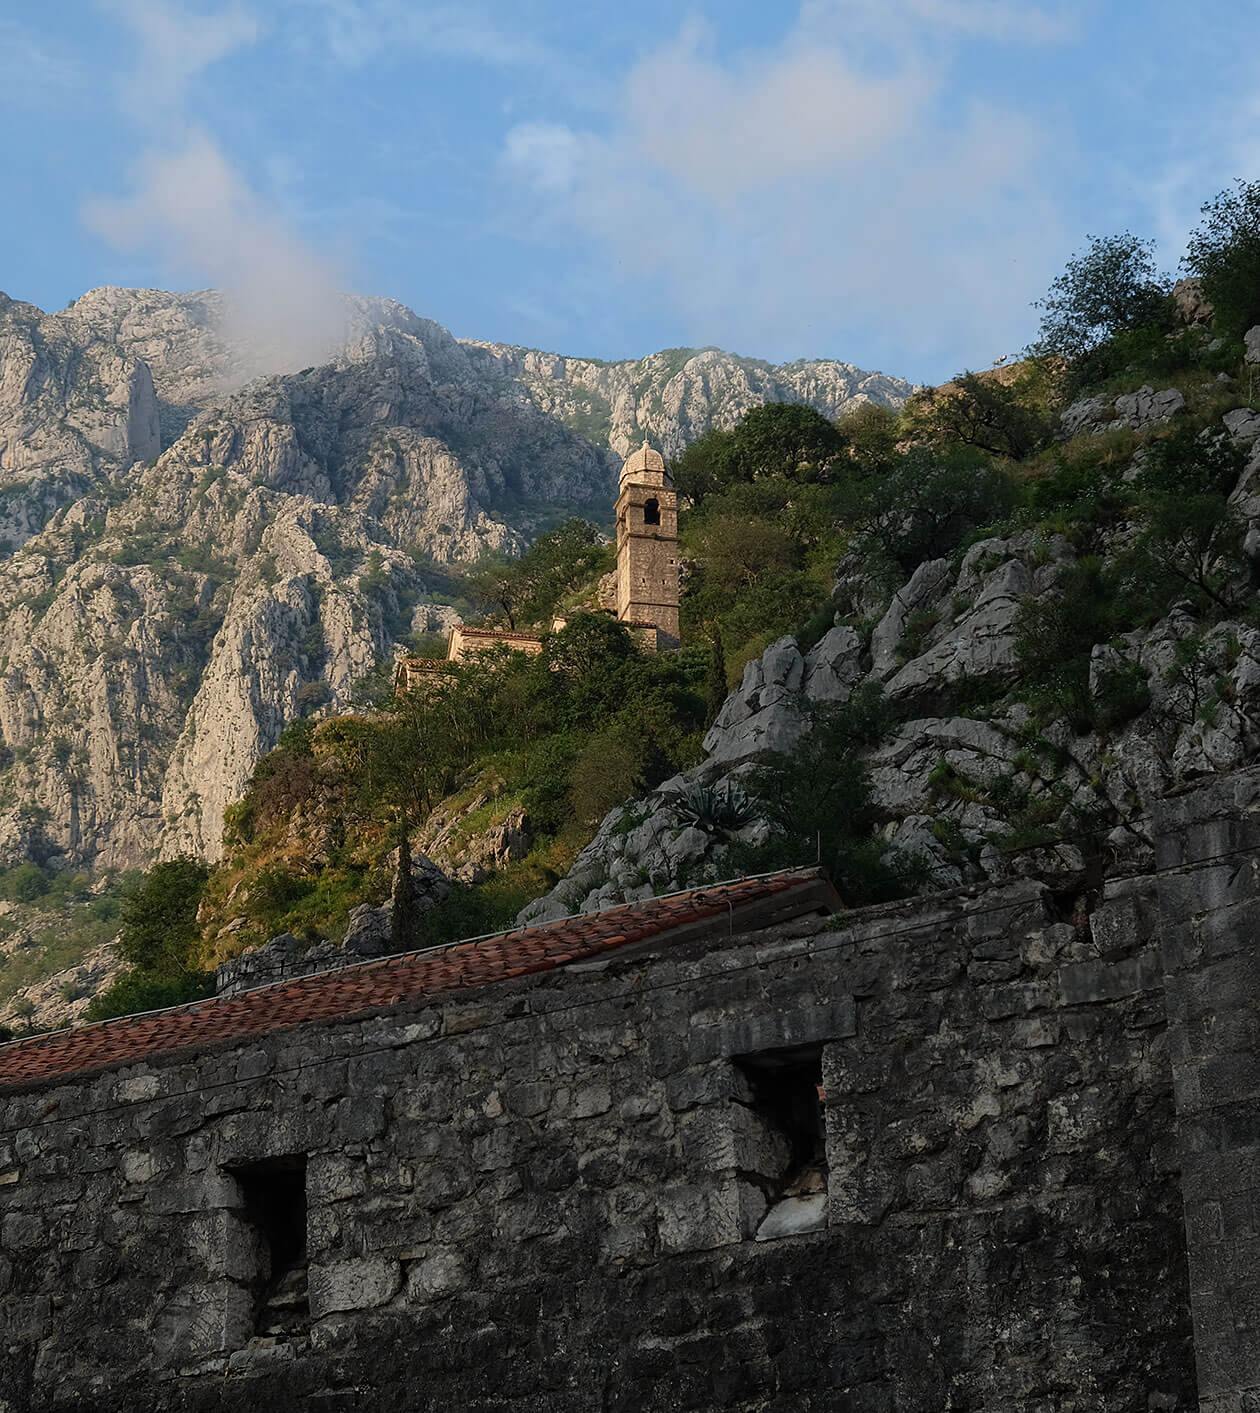 Kotor city walls and church in the evening sunshine